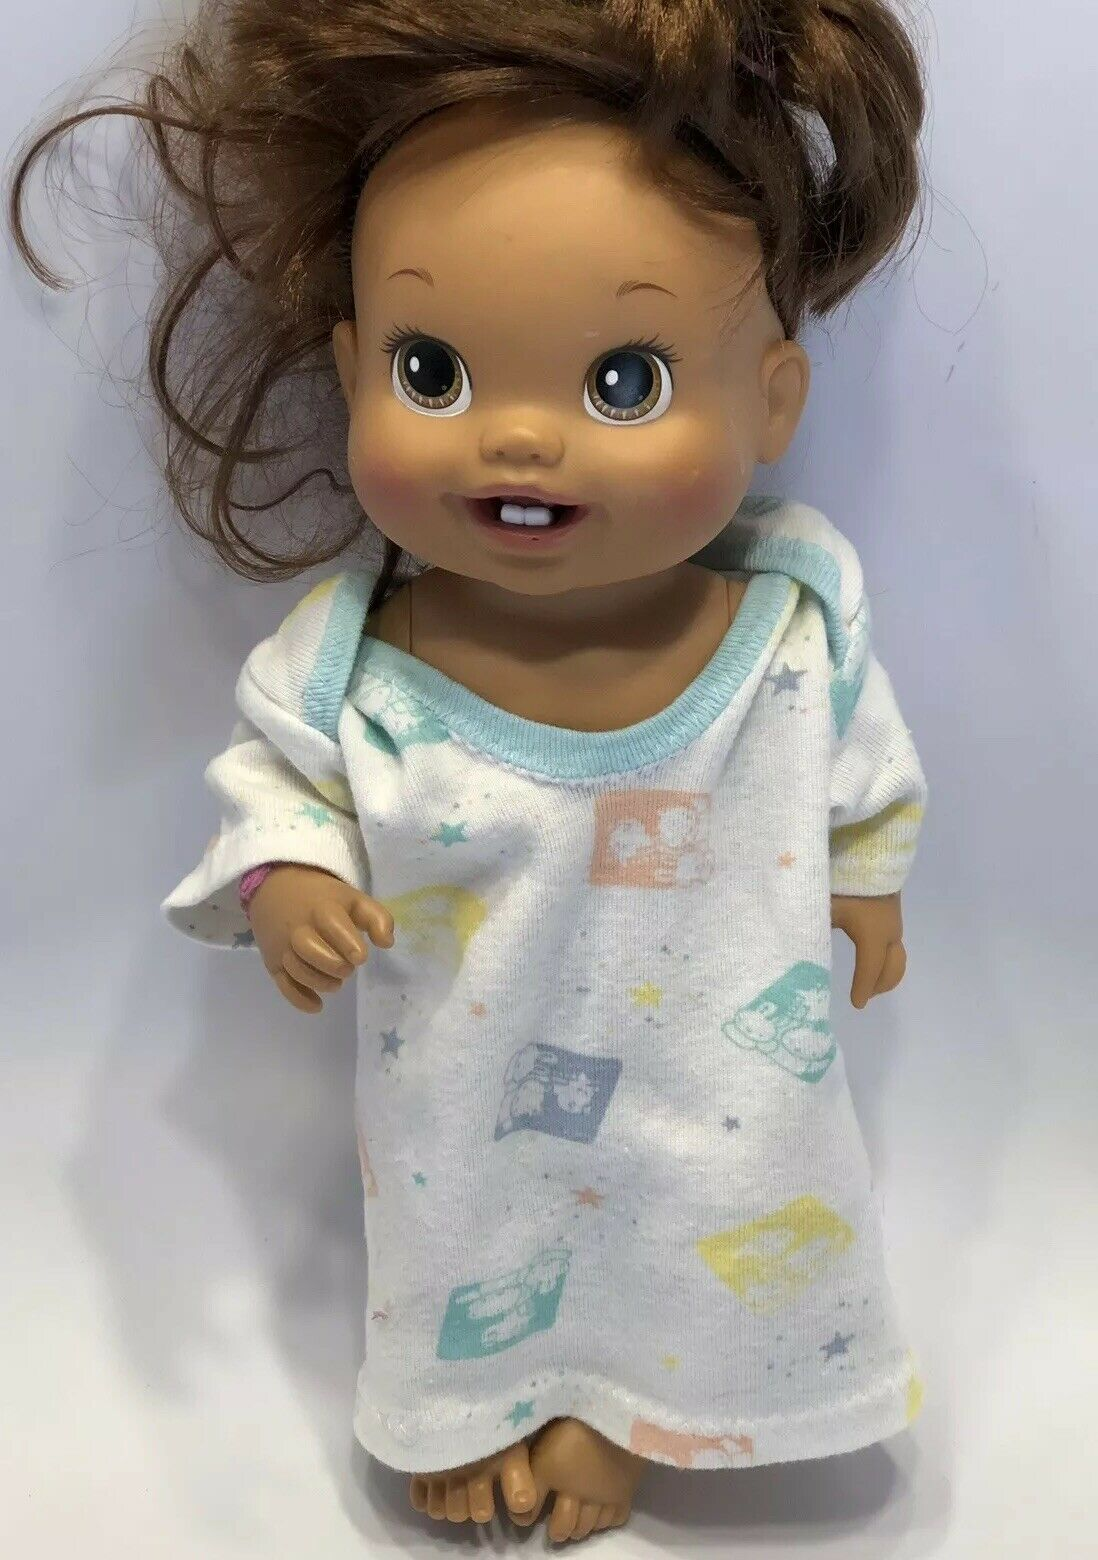 Baby Alive 2010 Drink & Wet Doll with 2 Teeth and Nightgown Doll Toy